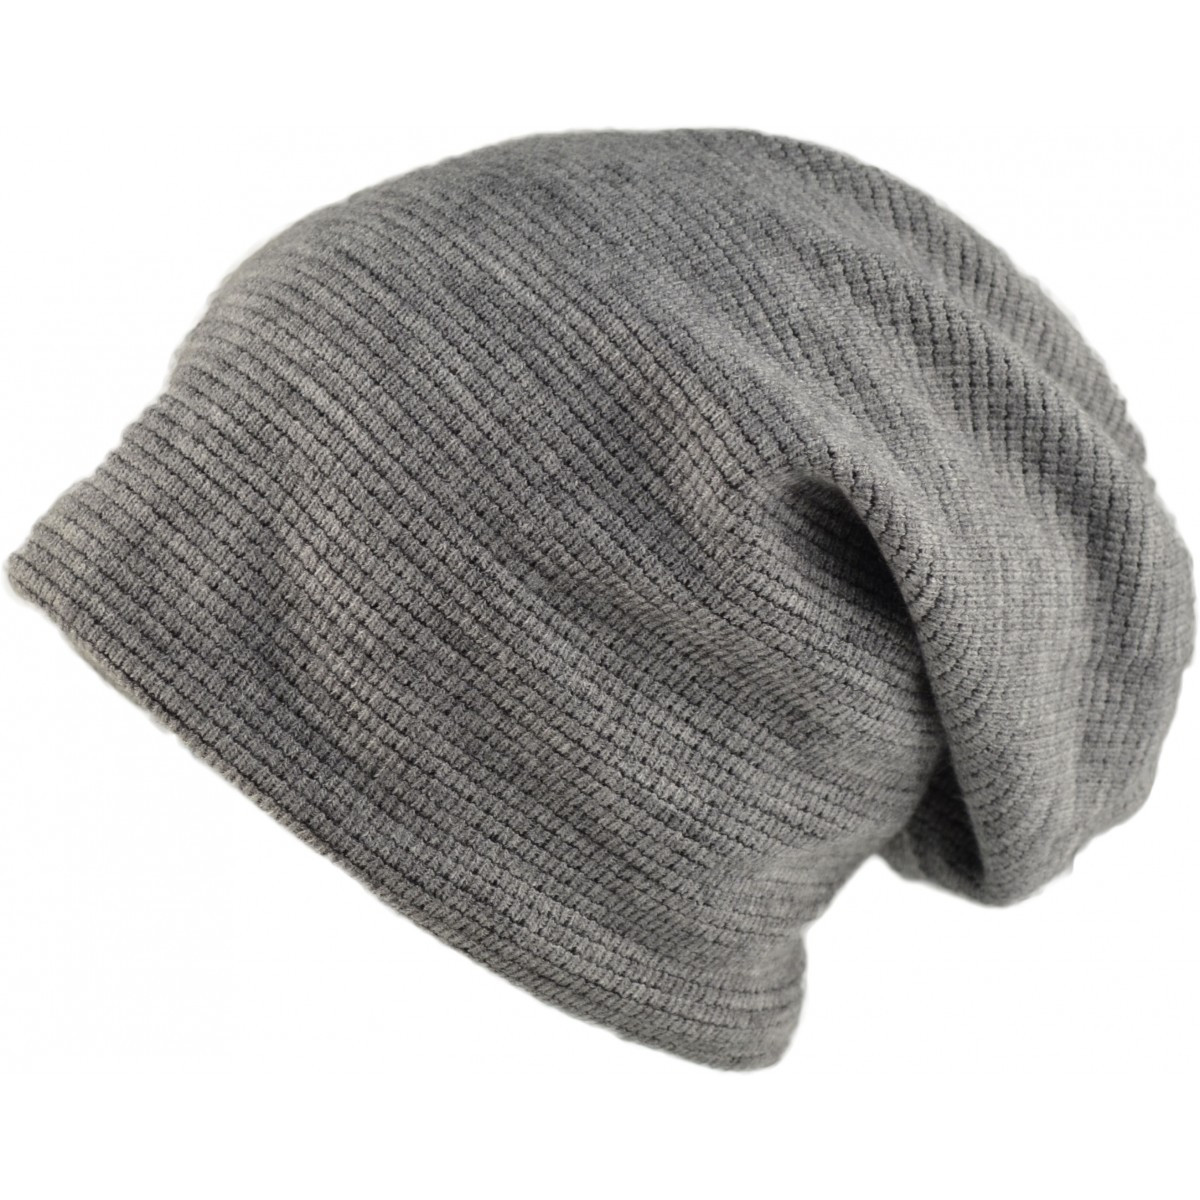 Best Of Euro Accessories Slouchy Beanie Hat Of Incredible 40 Ideas Slouchy Beanie Hat